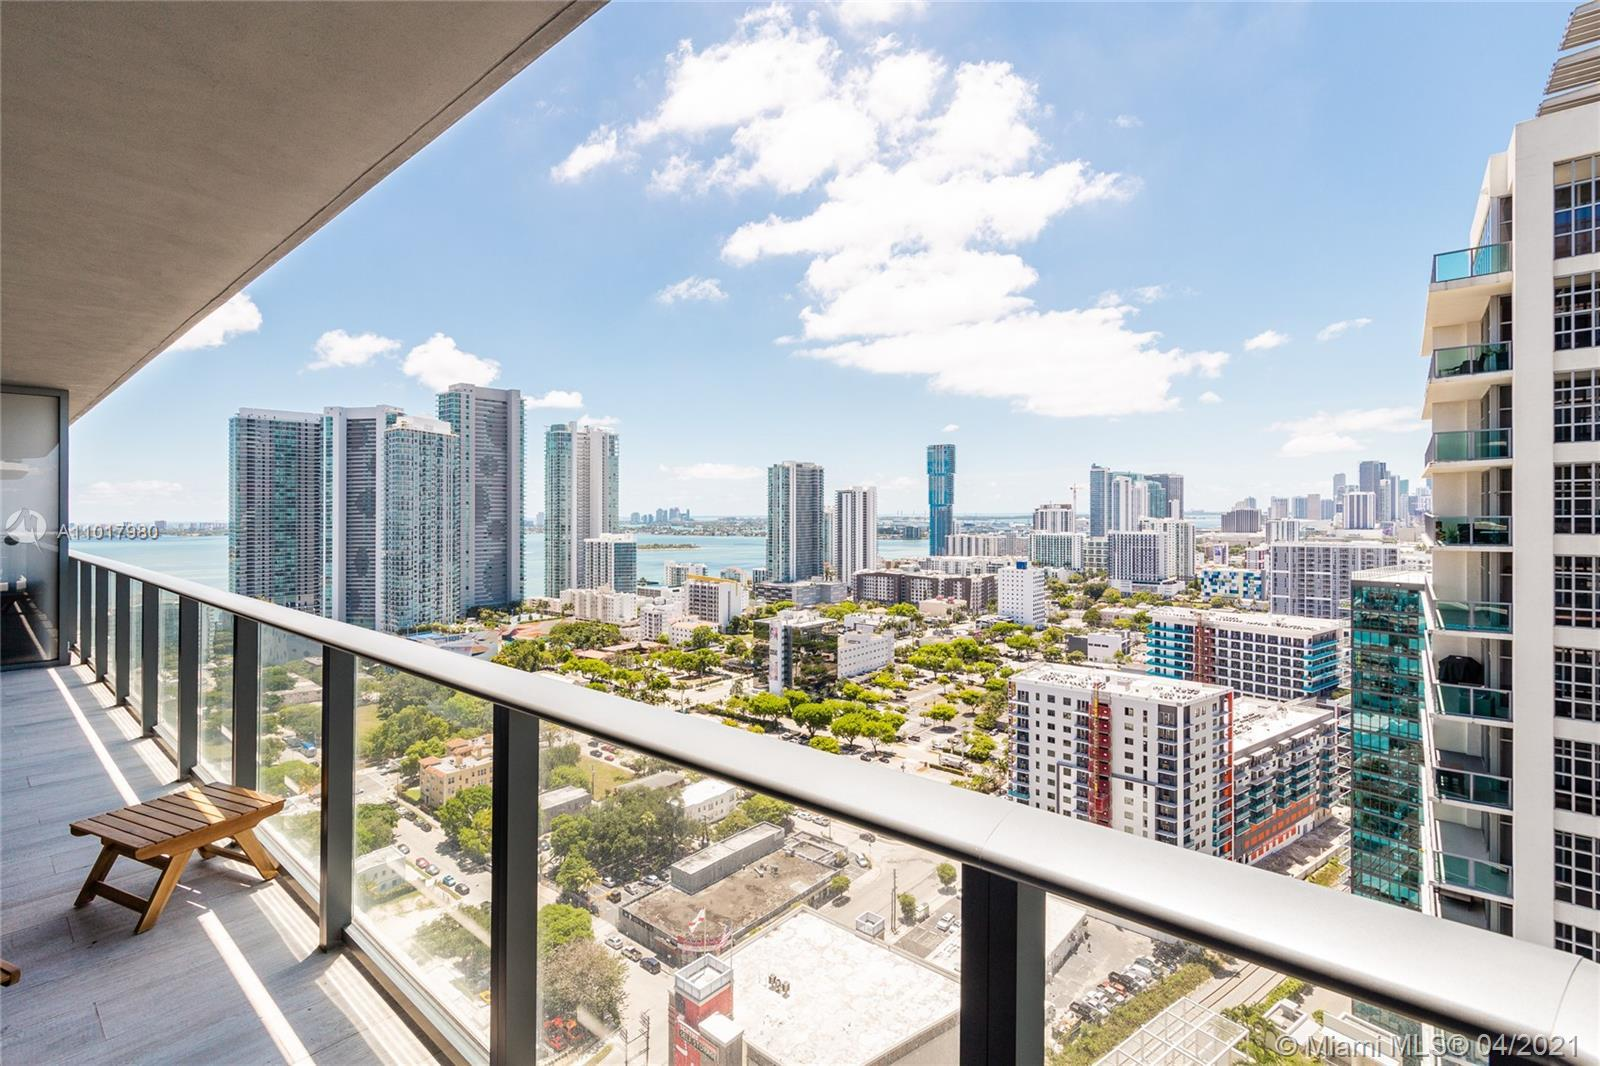 New luxury apartment for sale at Hyde Midtown Residences with amazing city and bay views. This apart